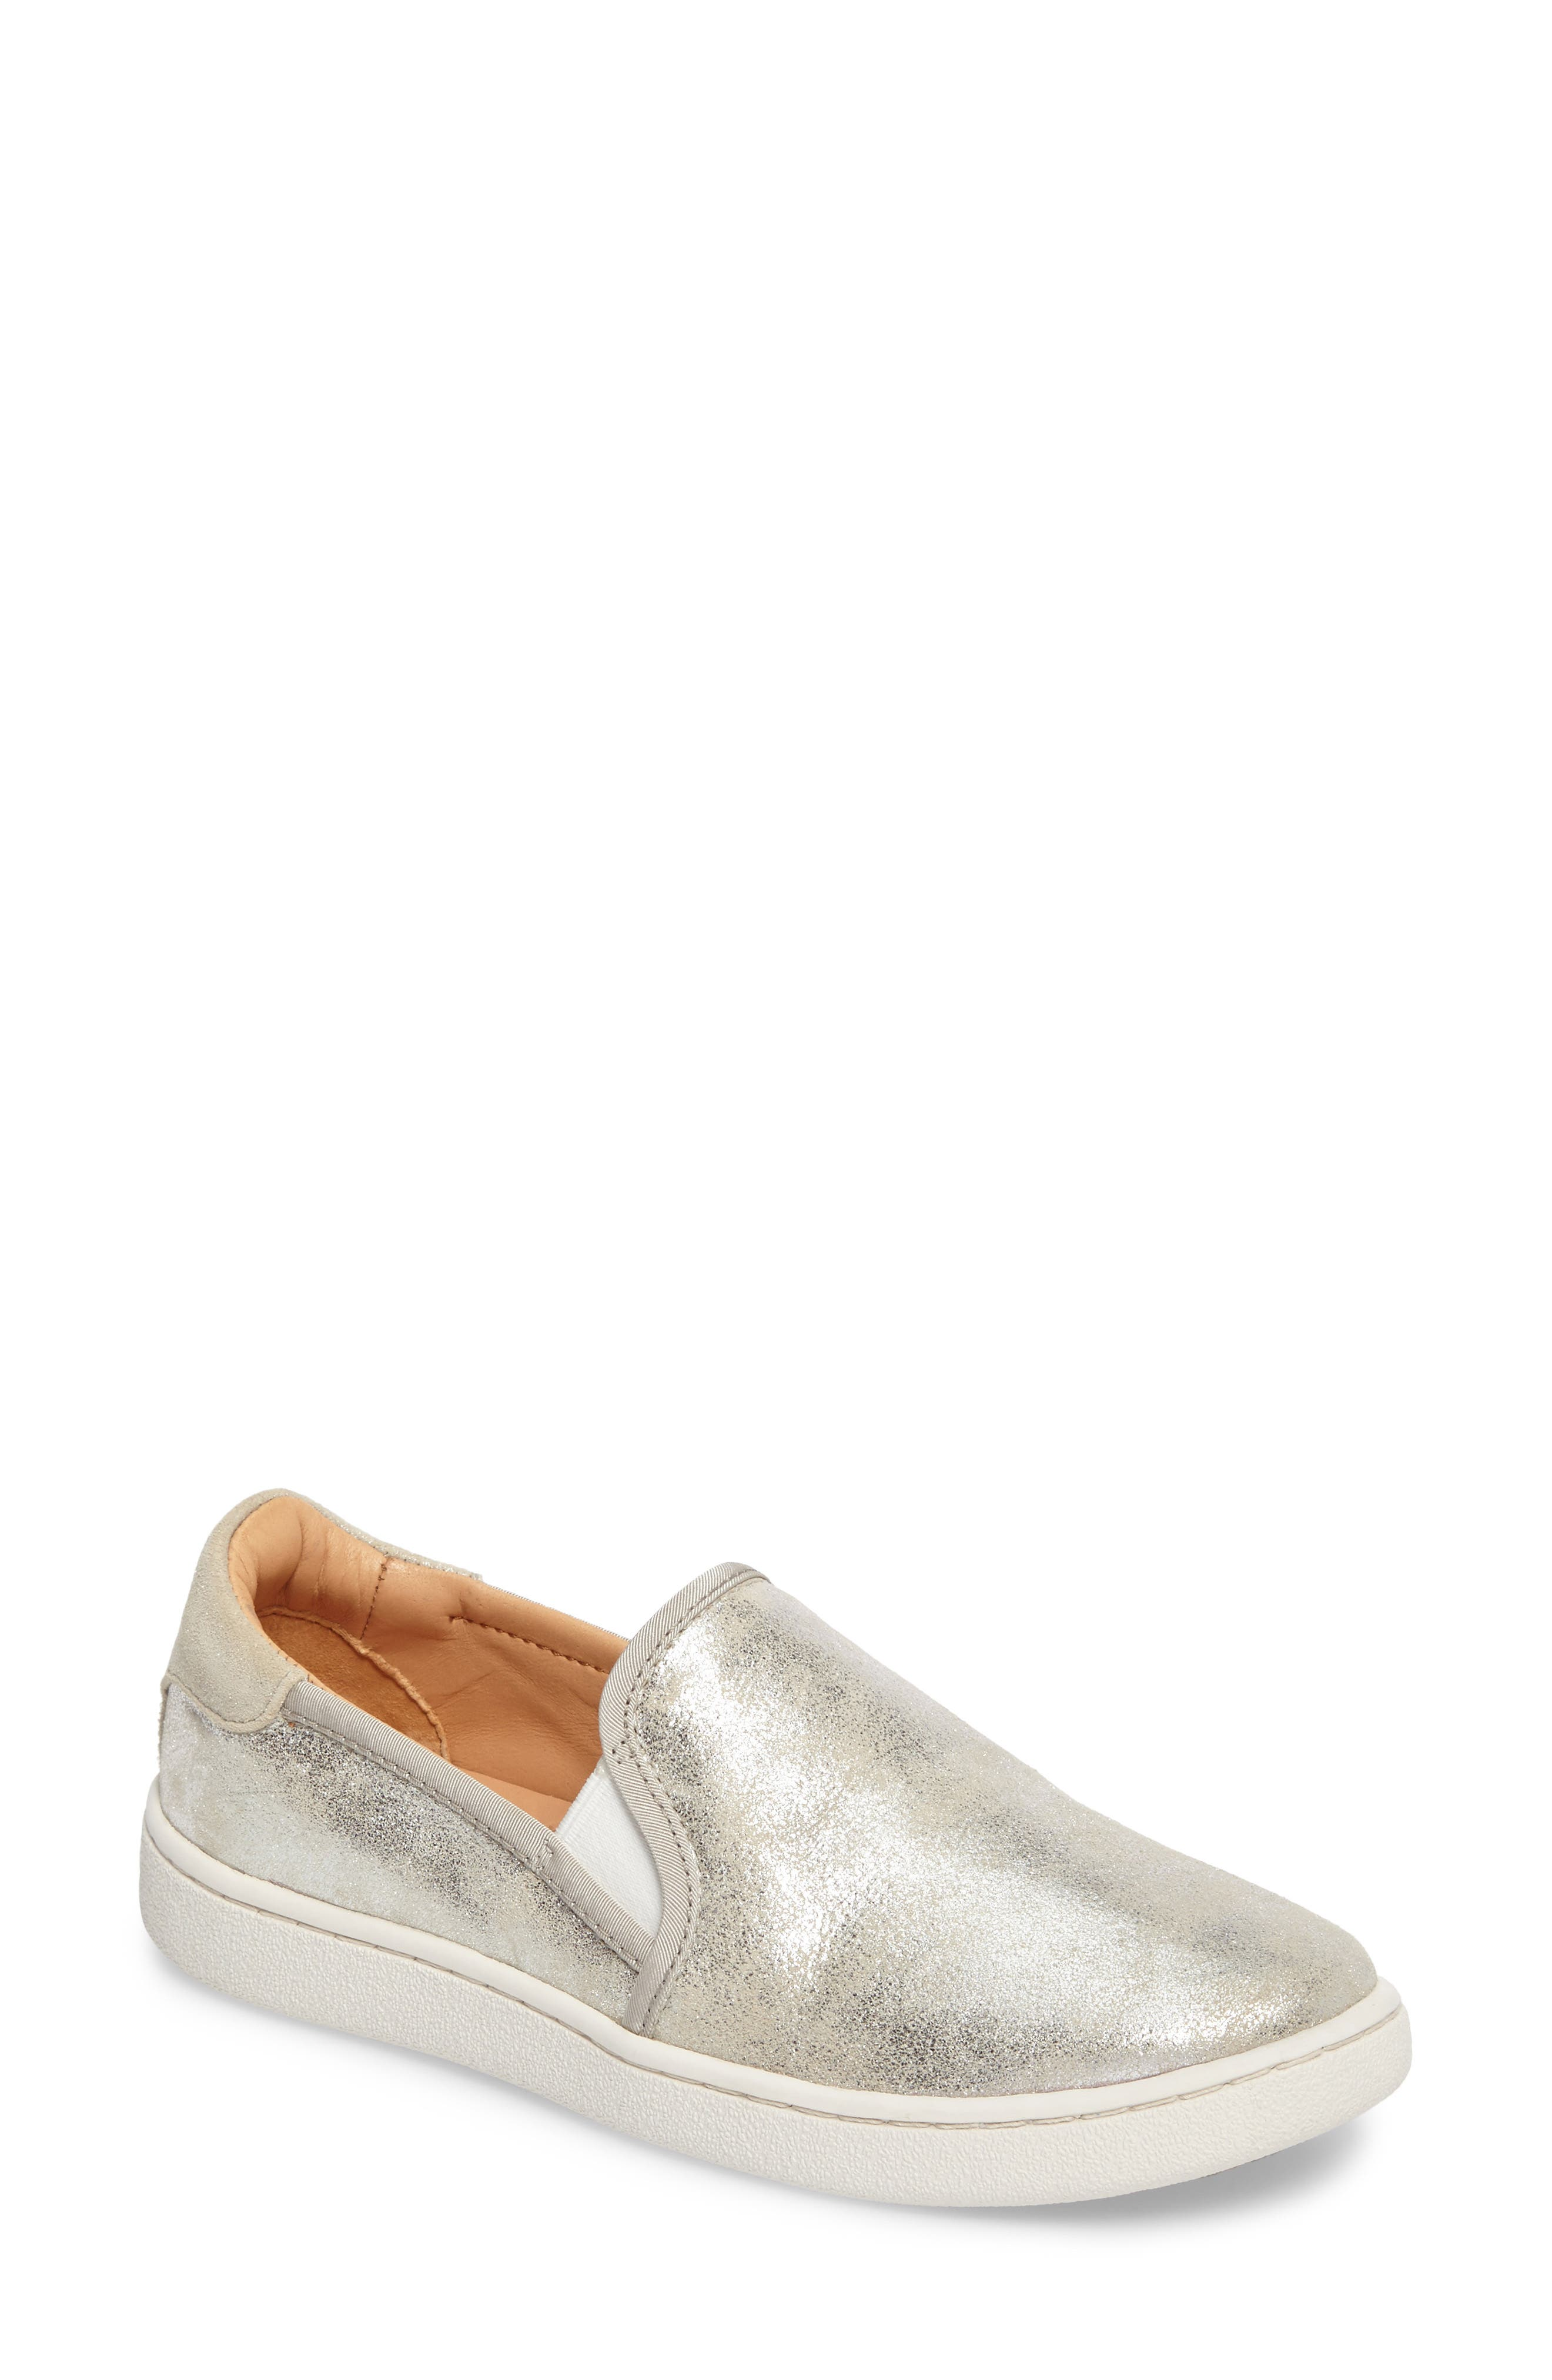 Cas Stardust Slip-On Sneaker,                             Main thumbnail 1, color,                             Silver Leather